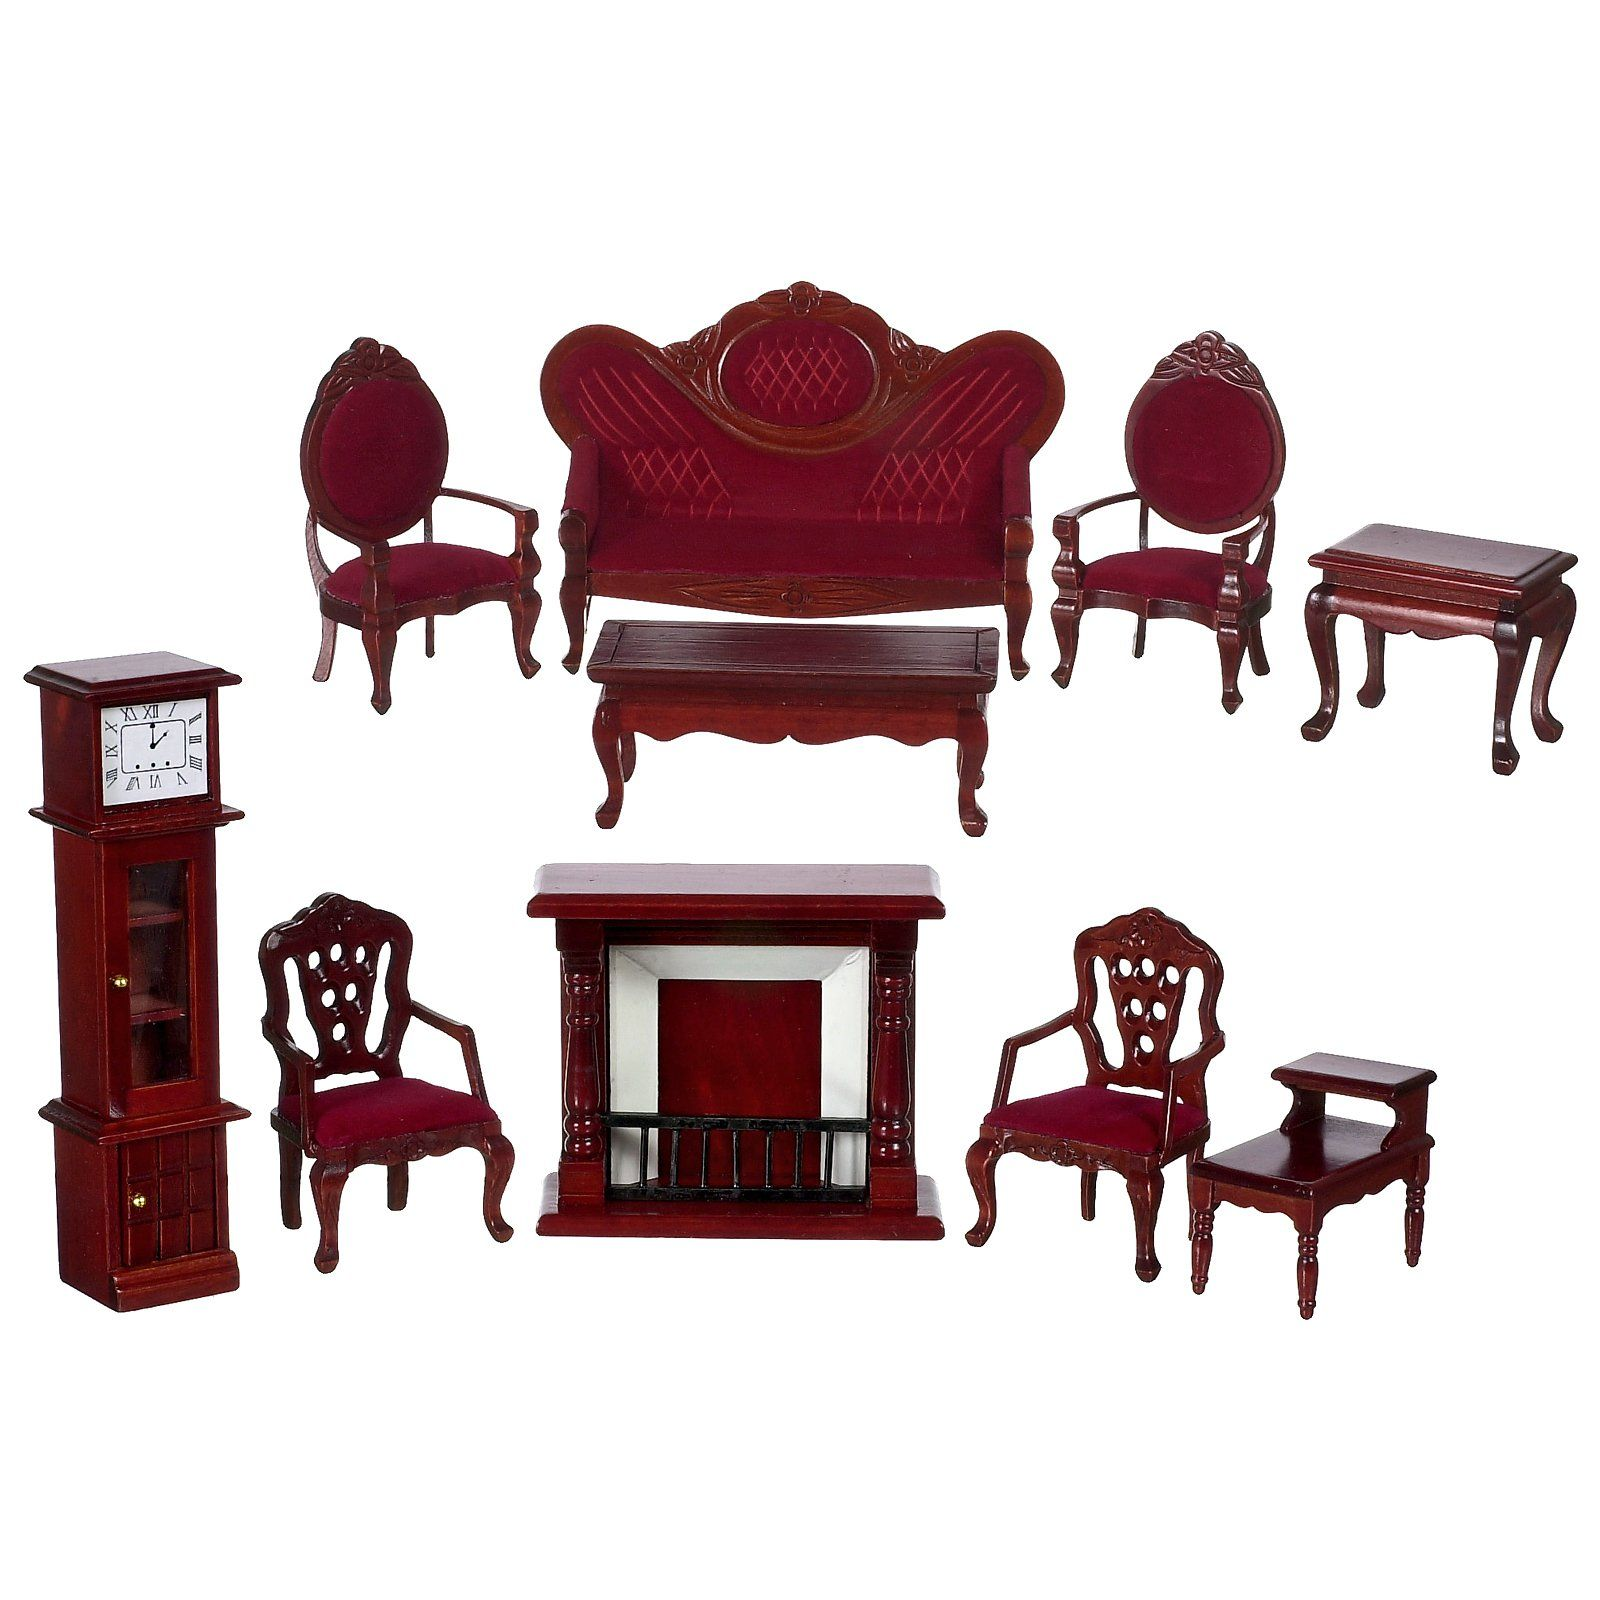 VICTORIAN LIVING ROOM DOLLHOUSE FURNITURE MINIATURES